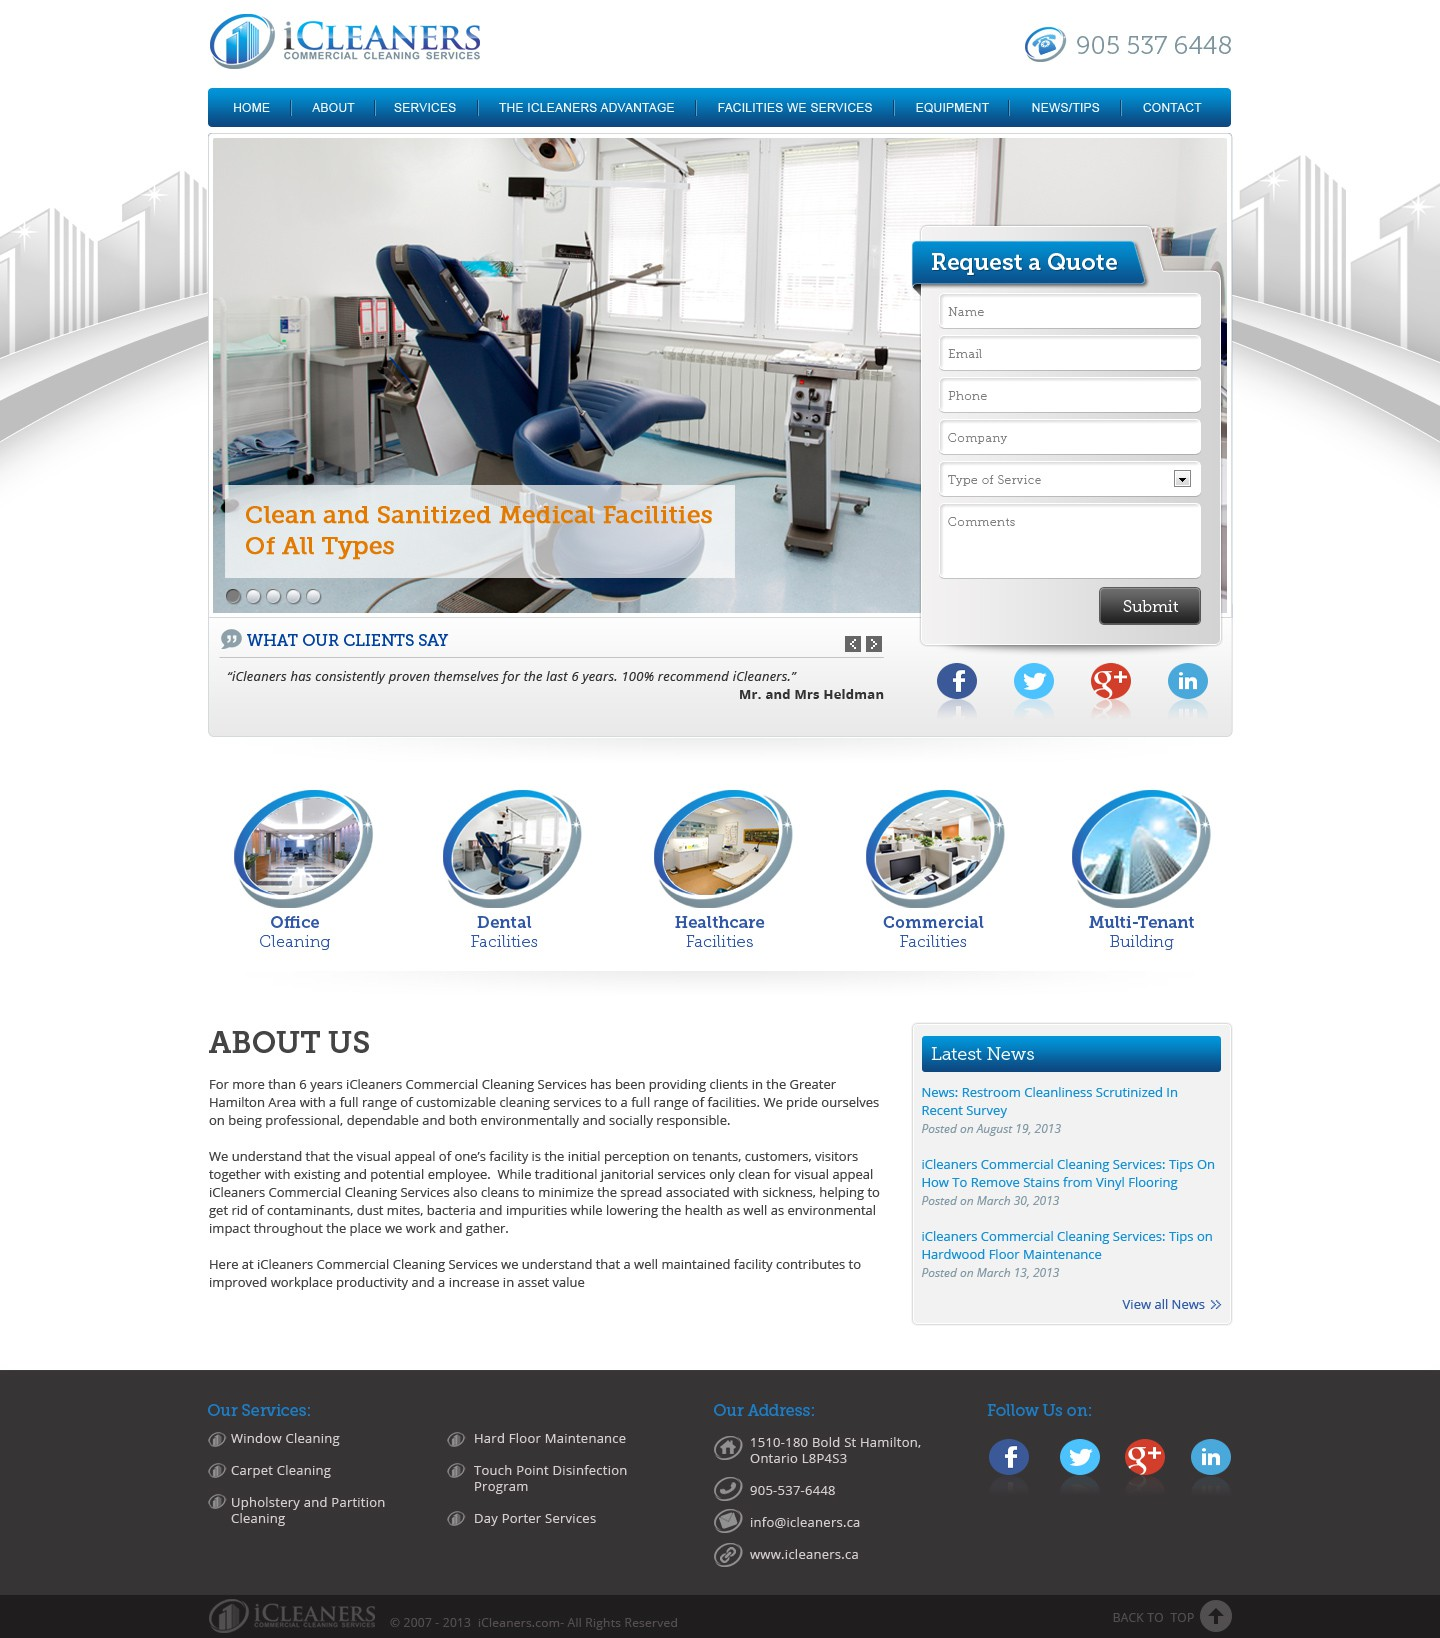 website design for iCleaners Commercial Cleaning Services